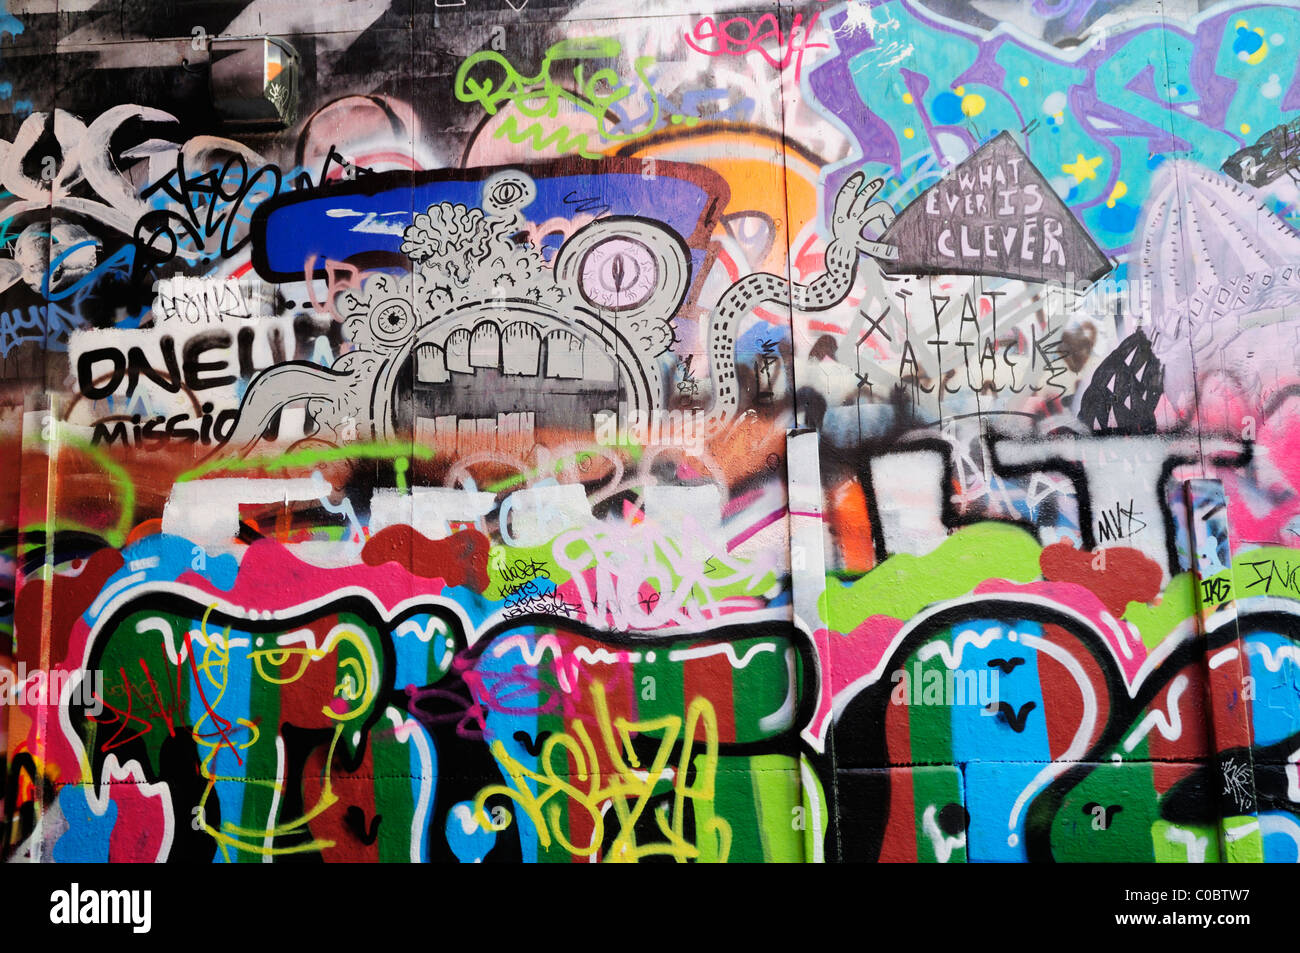 A Graffiti Artist Sprays A New Piece Part Of Southbank Centre Known As The Under